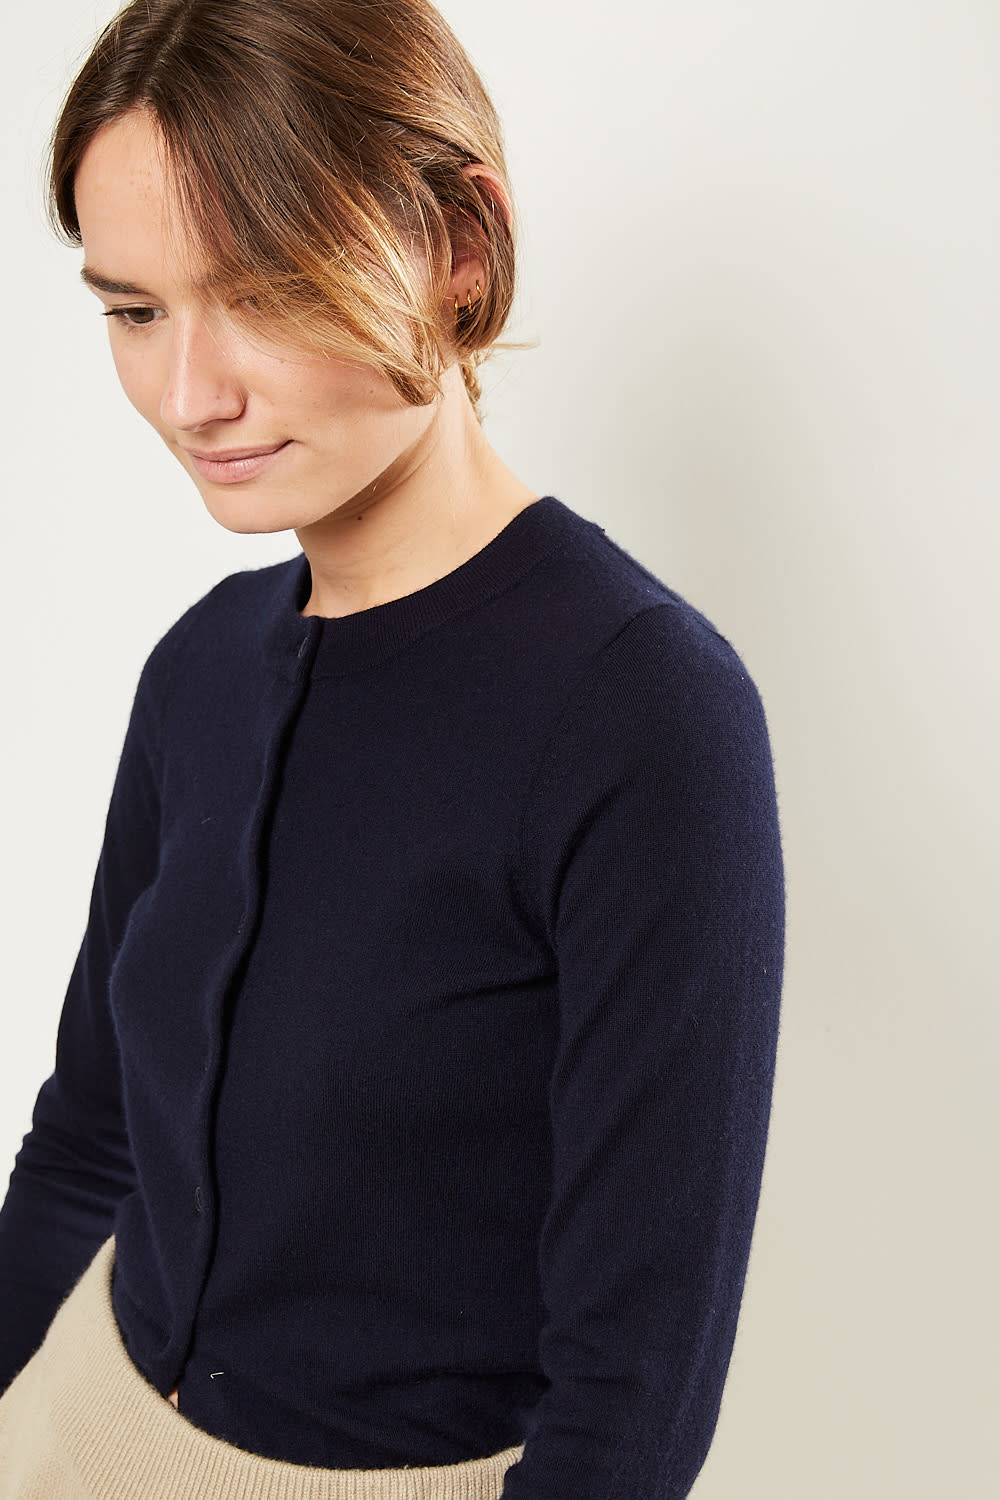 extreme cashmere - No99 little cardigan navy